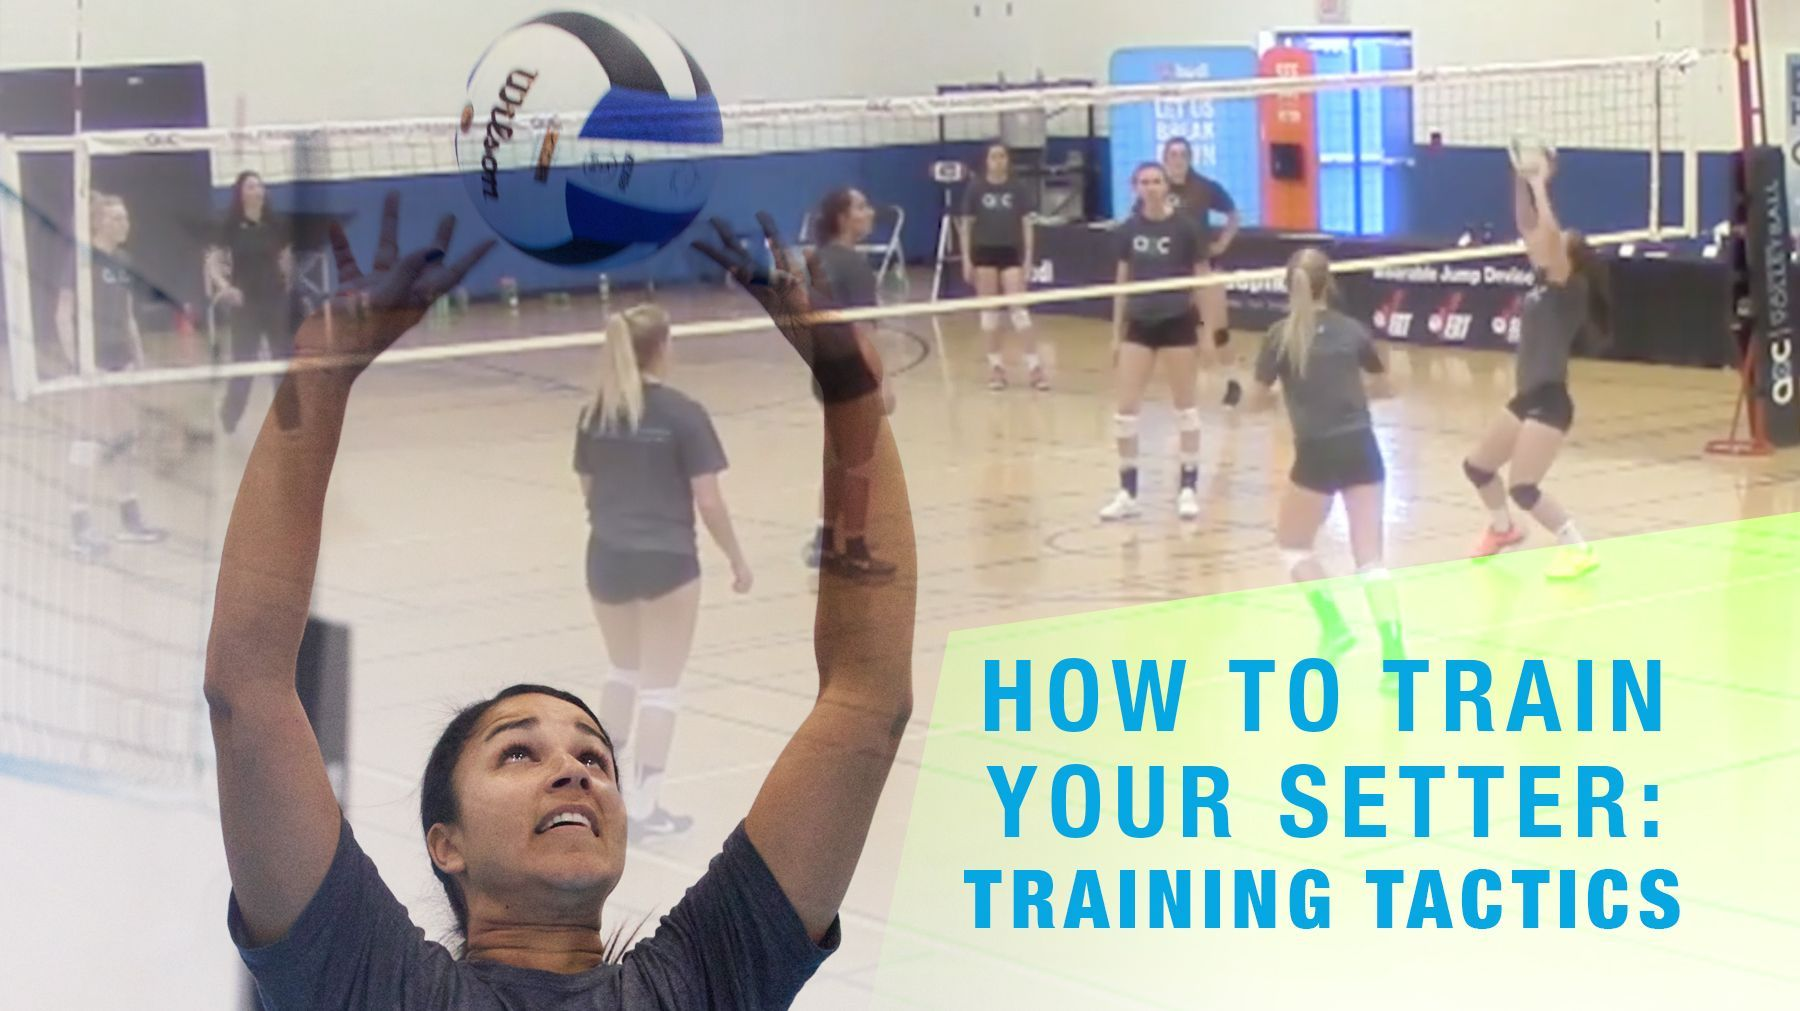 How To Train Your Setter Training Tactics Coaching Volleyball Volleyball Drills Volleyball